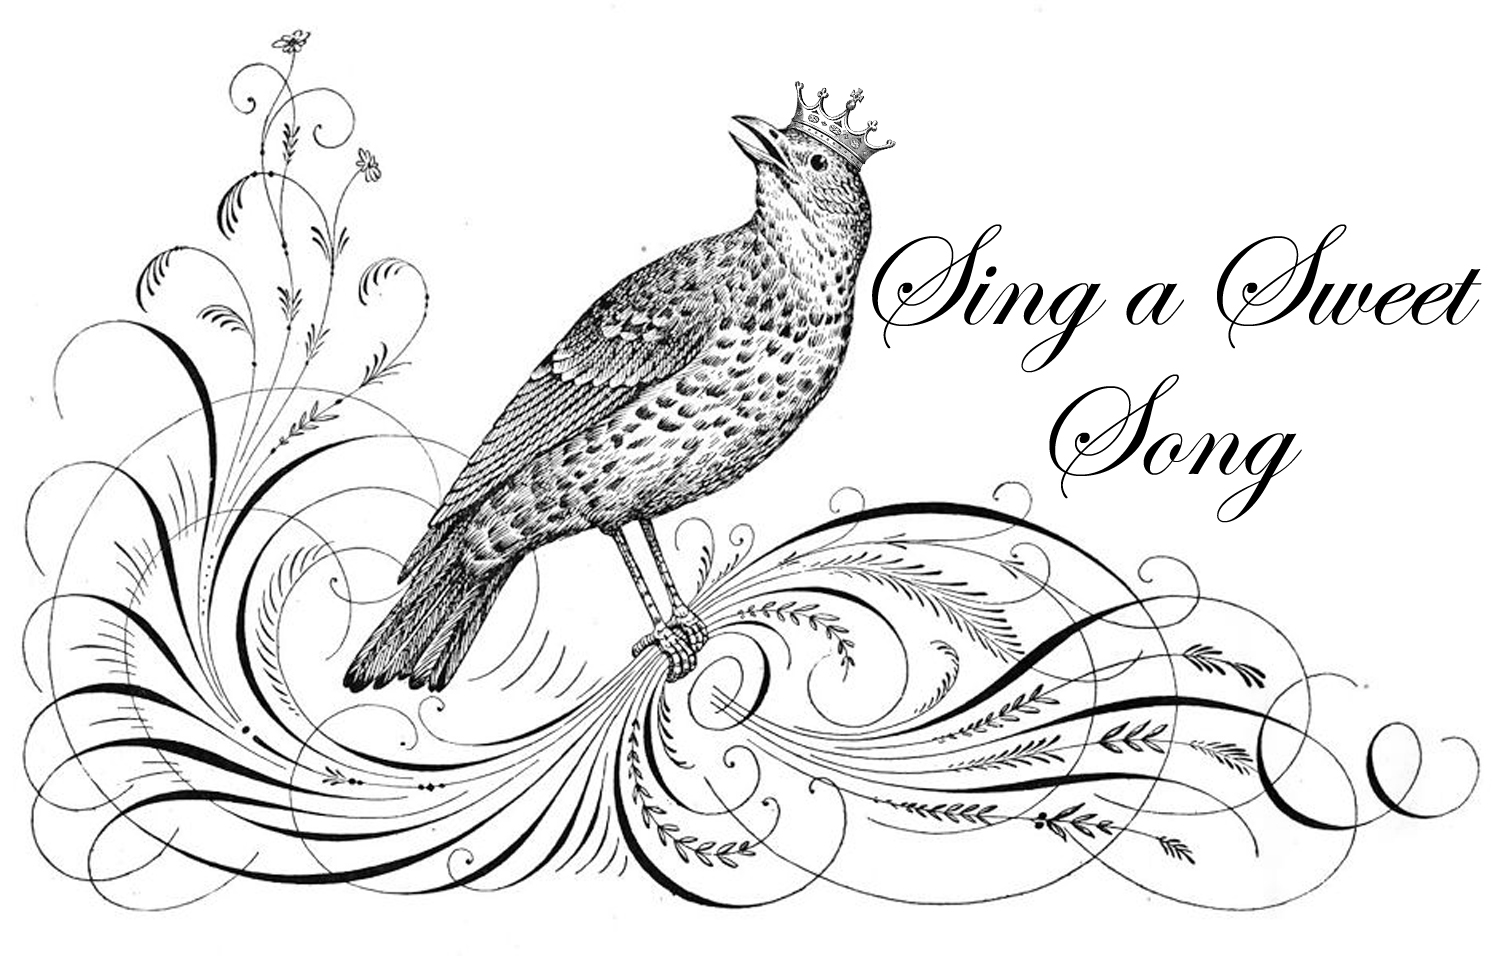 Free Graphic Of The Evening Crowned Song Bird The